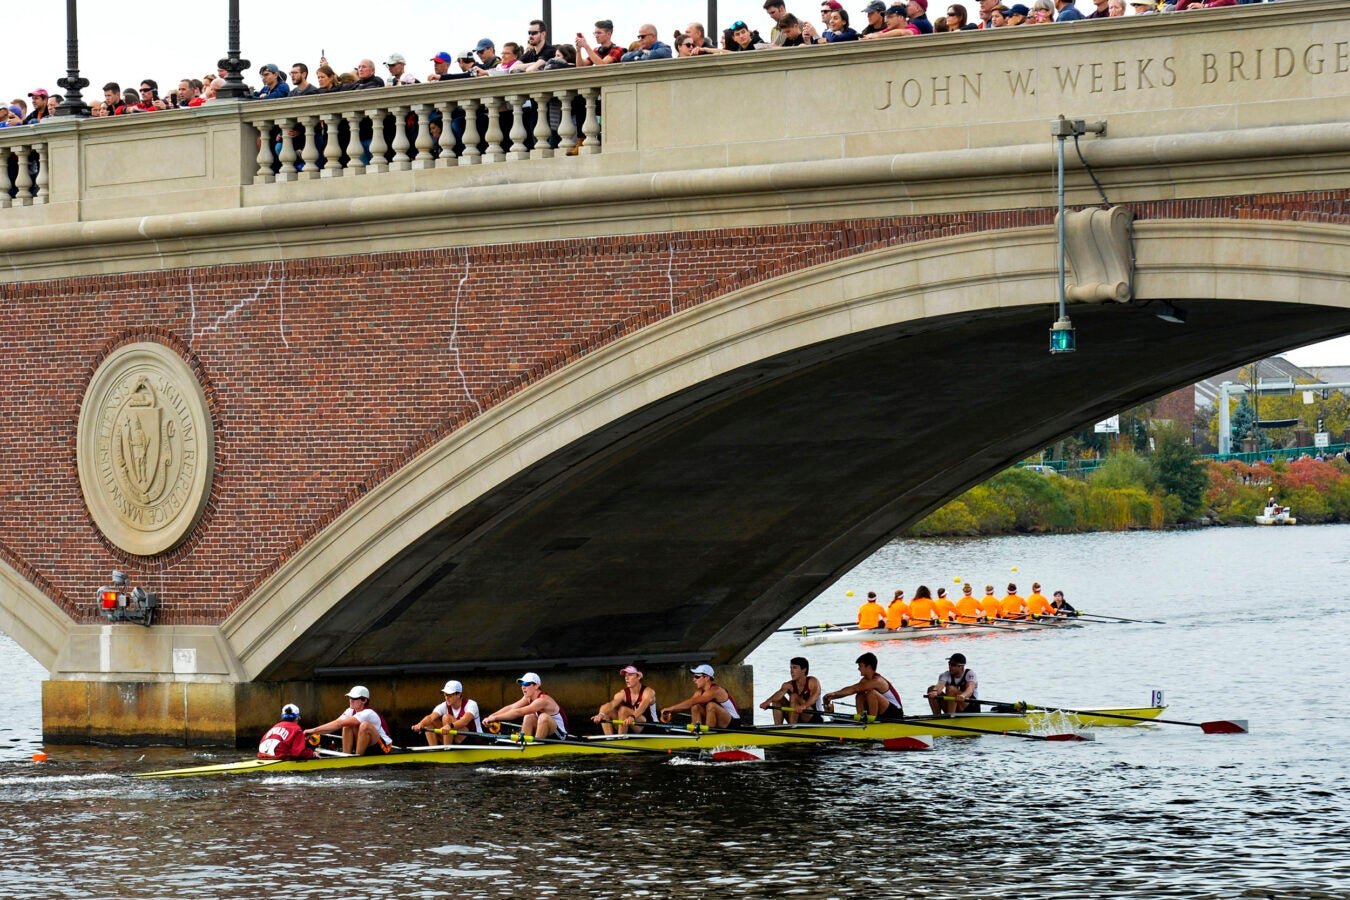 Harvard's boat in the men's lightweight eights race passes beneath the Weeks Footbridge.